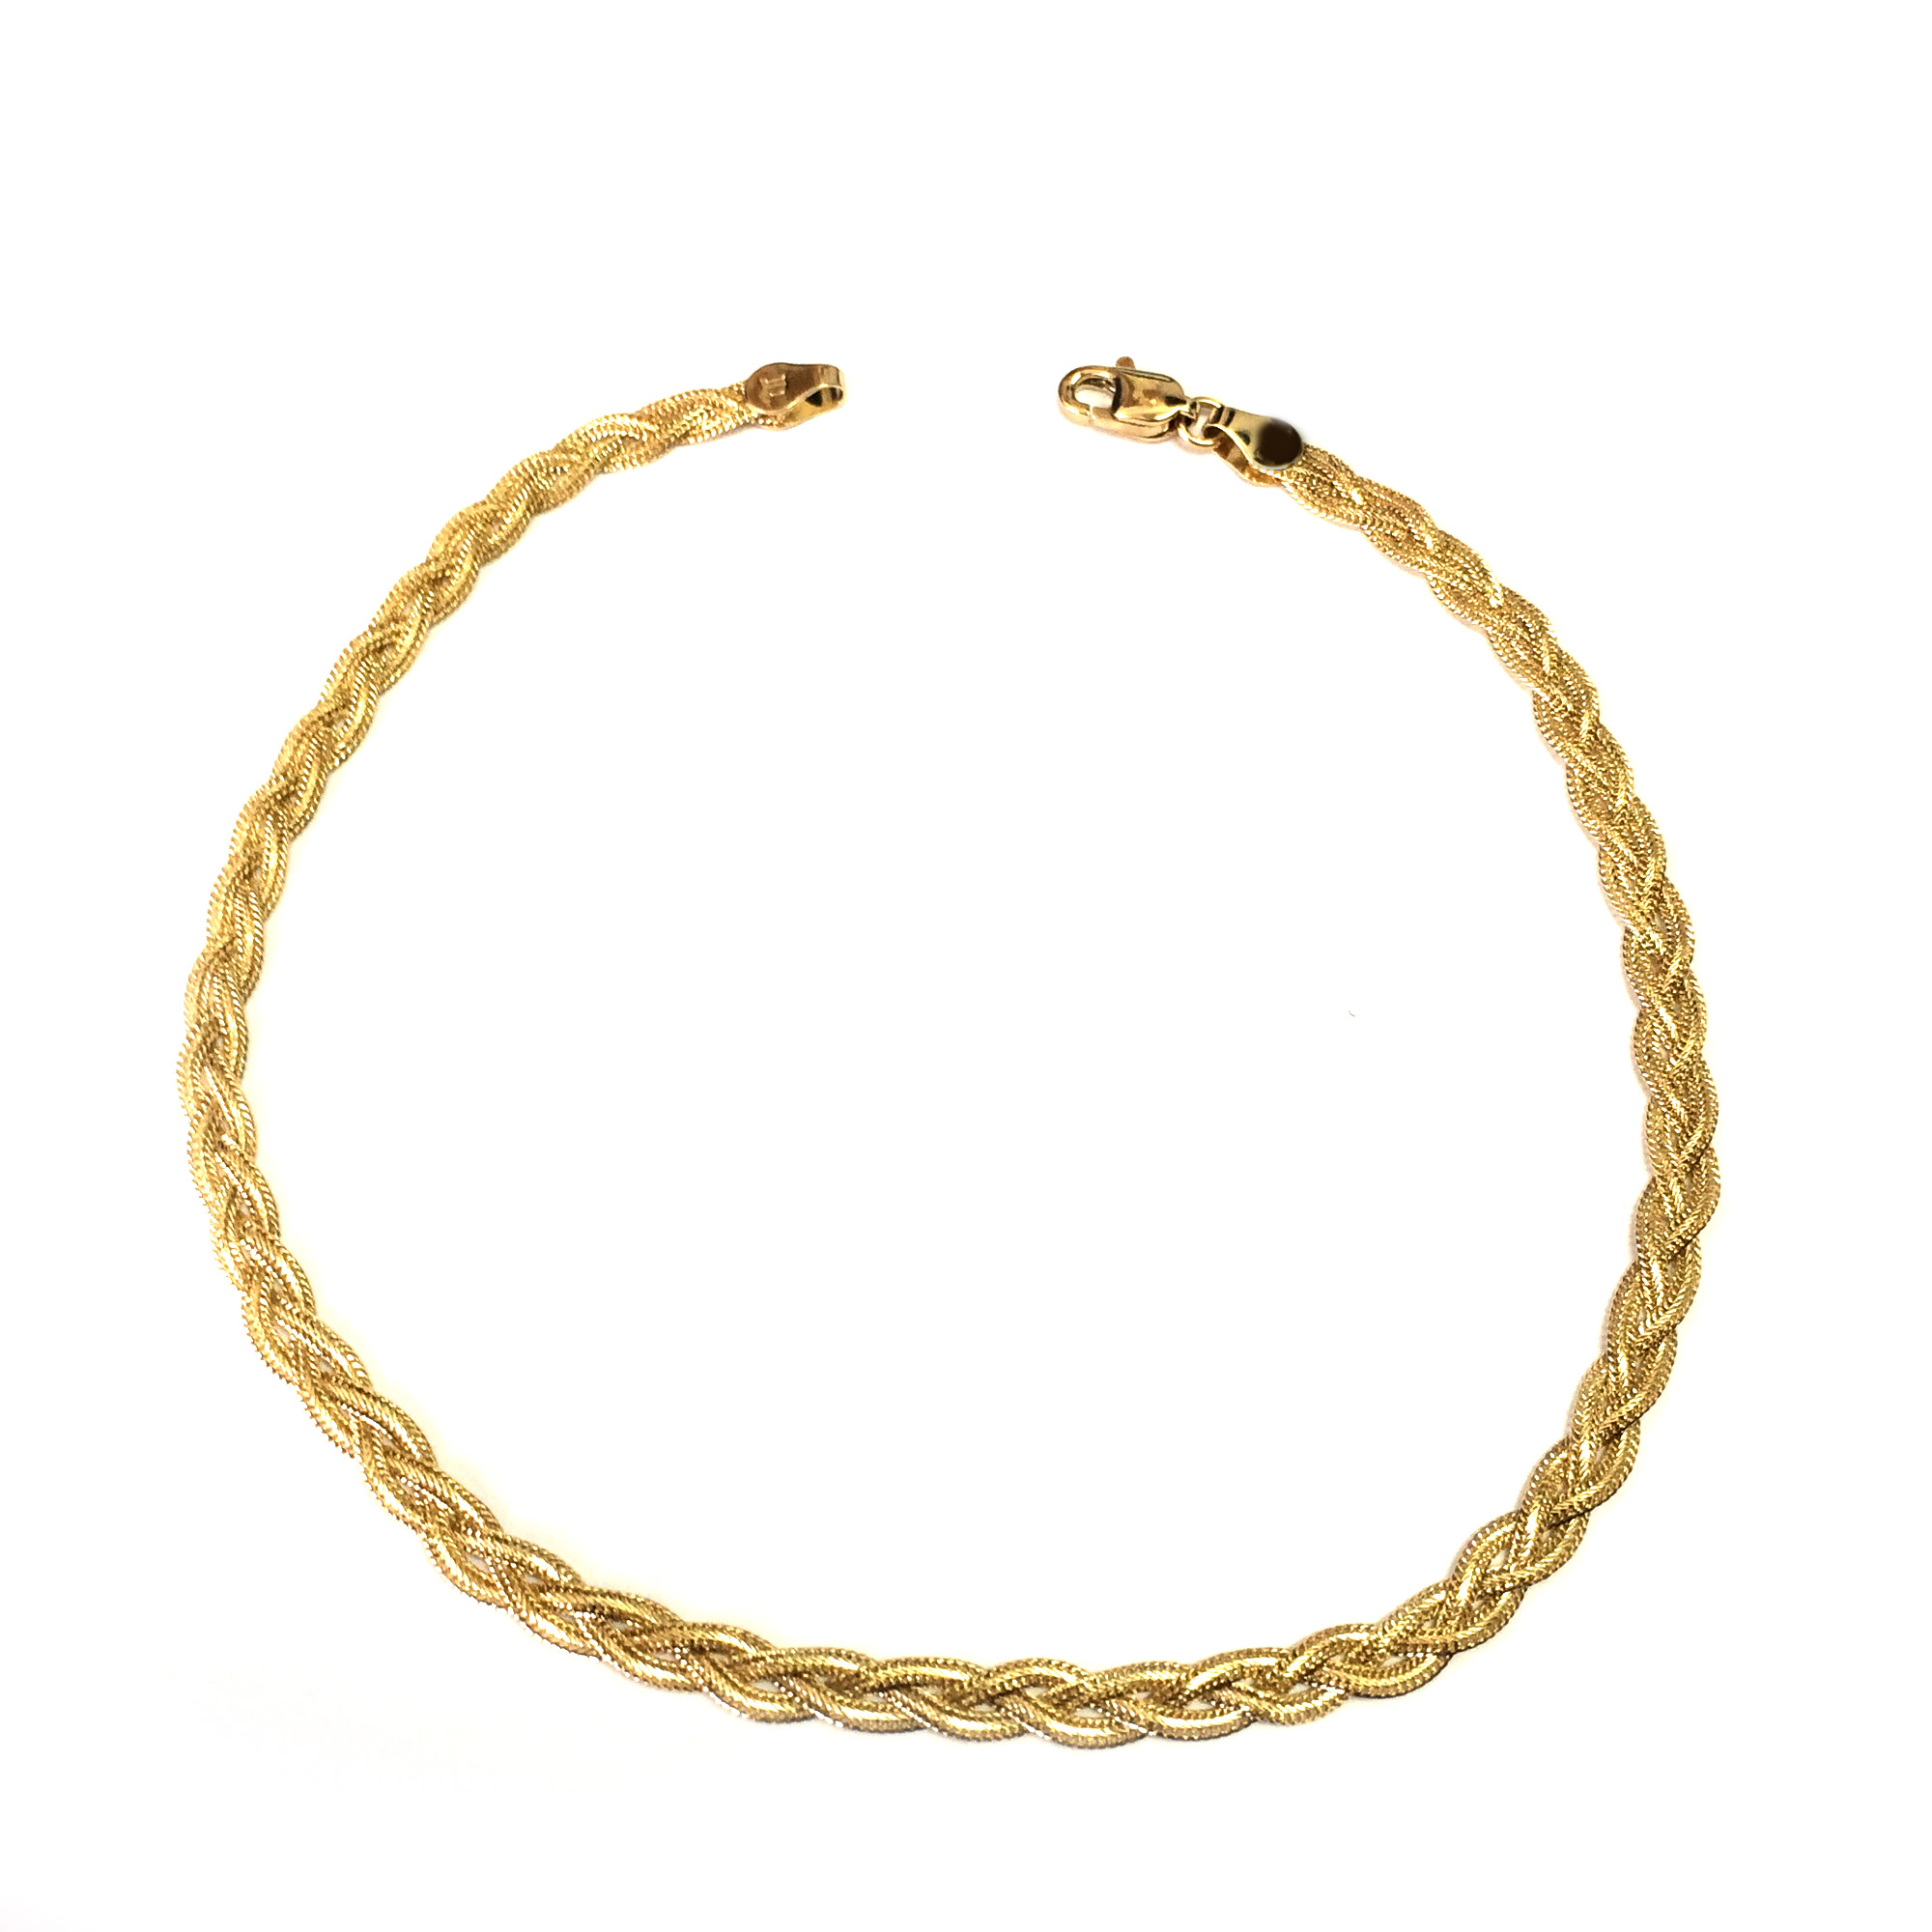 14K Yellow Gold Diamond Cut Braided Fox Chain Anklet, 10″